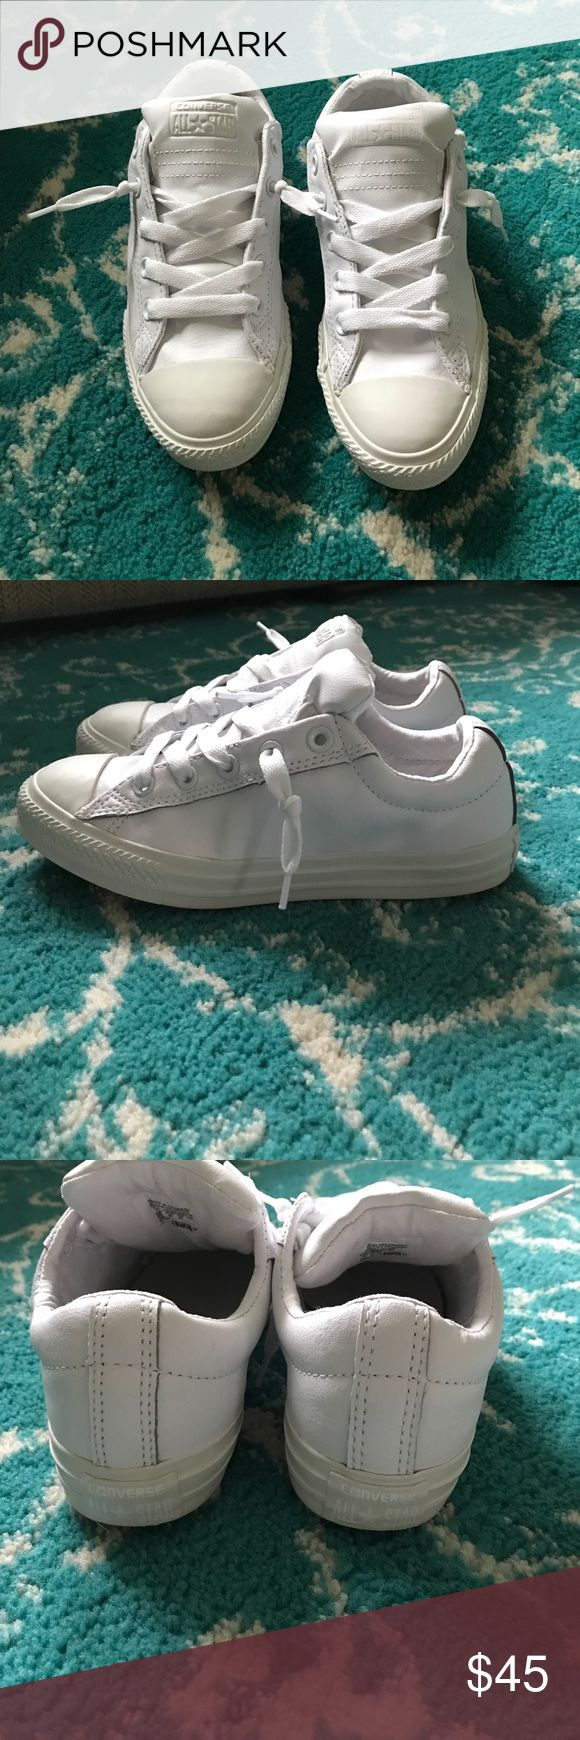 All White leather converse sneakers Size 7 women's (these are a 4 youth, but run big and fit size 7 women) I typically wear a women's 6 or 6.5 and these are just a little too big to wear comfortably for me. Worn 1x only,  not one spec of dirt on them. Converse Shoes Sneakers